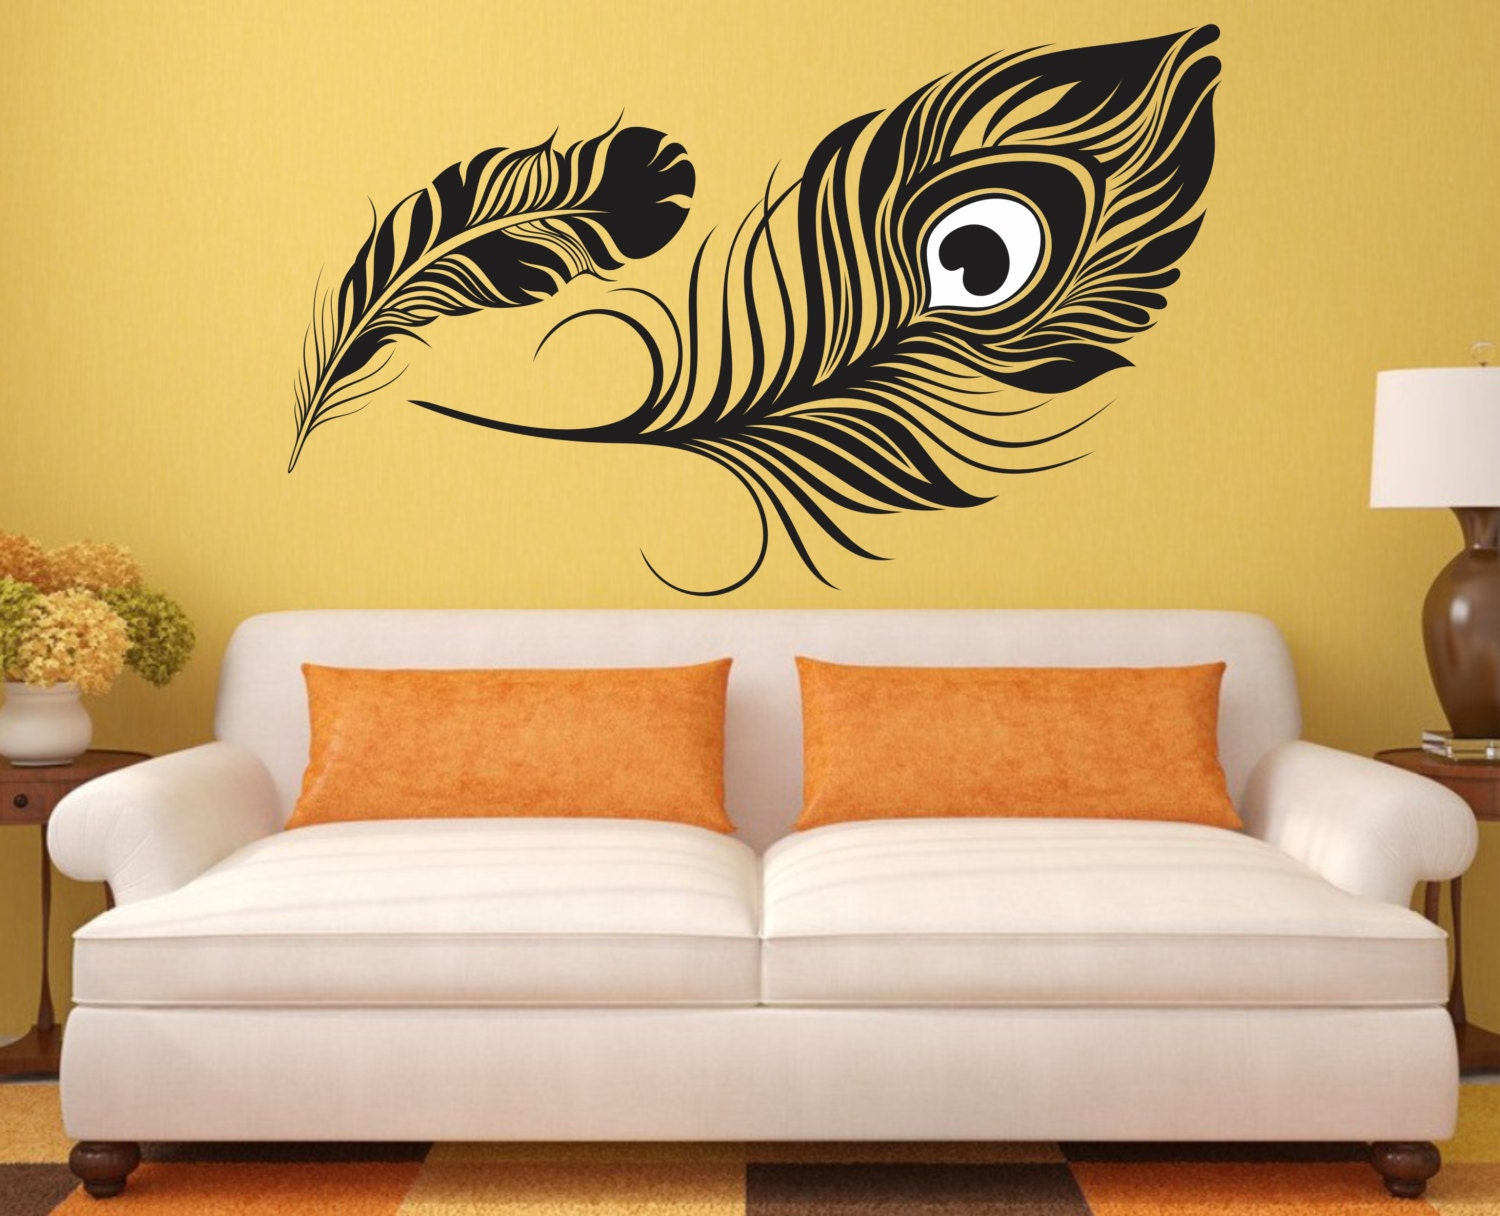 Feather Wall Decal peacock feather Vinyl Sticker Decals Art